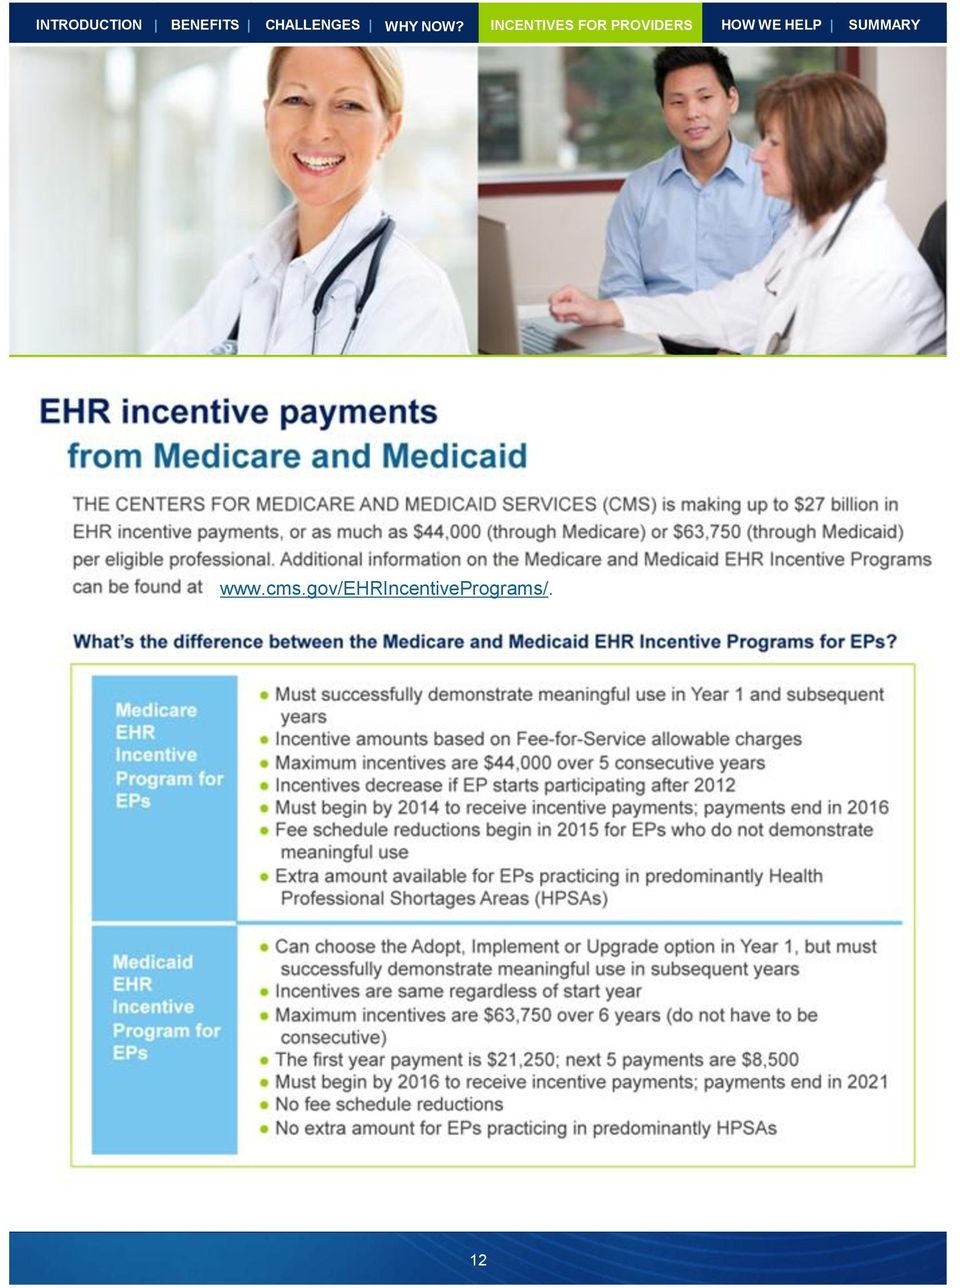 INCENTIVES FOR PROVIDERS HOW